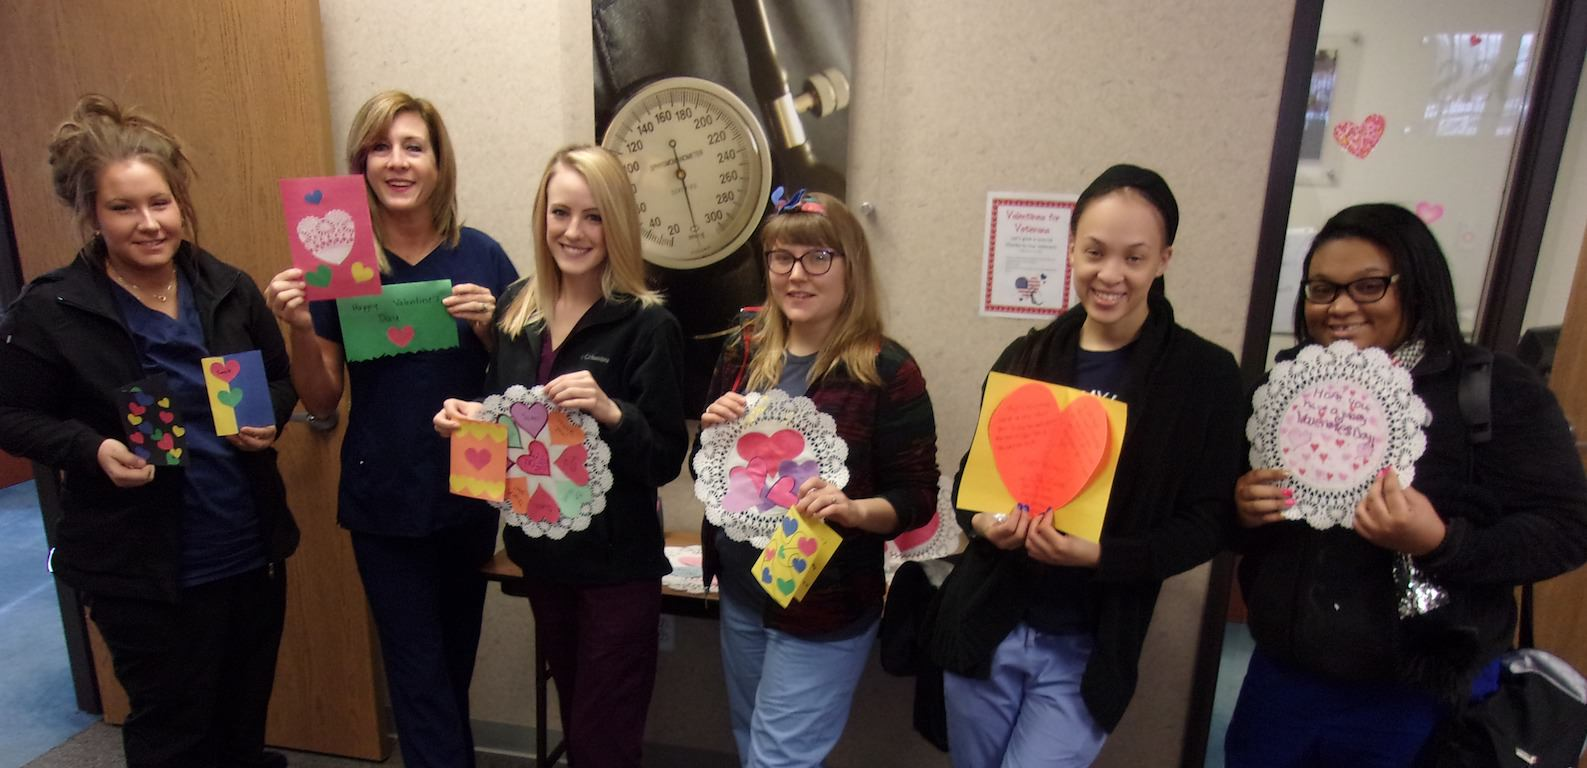 Ross Medical in Ann Arbor Makes Valentines for Veterans